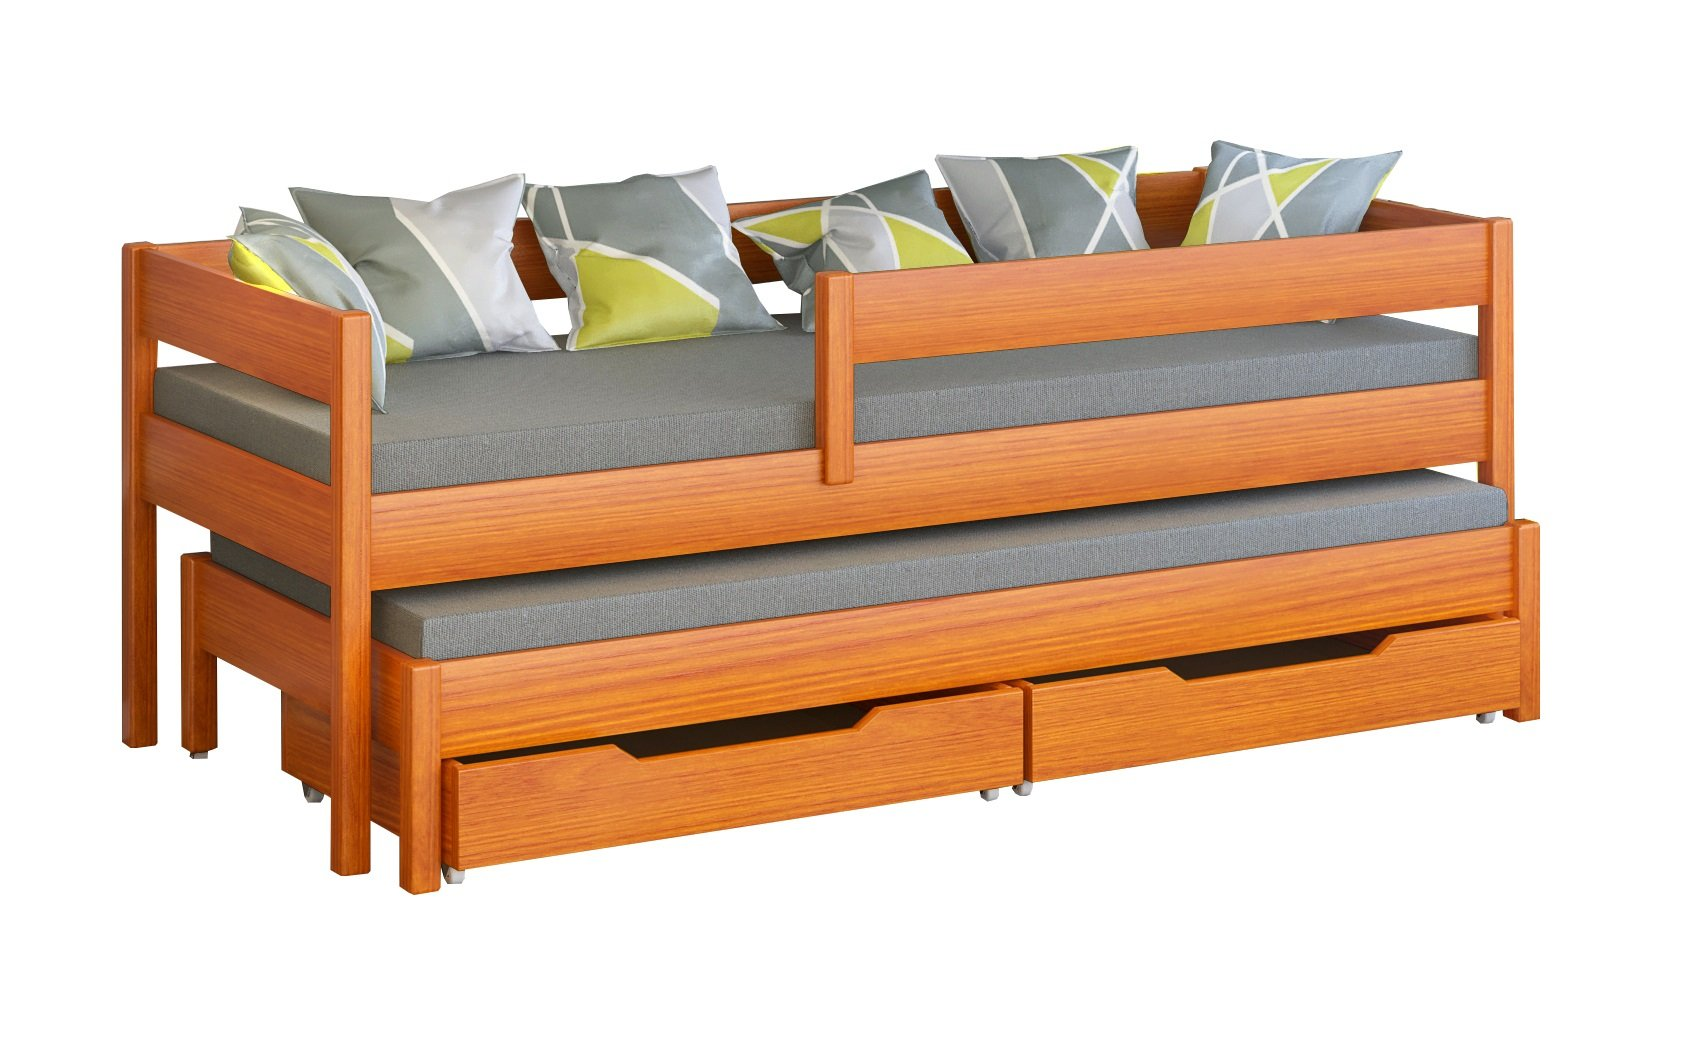 Jula Single bed for kids with trundle. Drawers included (180x80/170x80, Tic) Jula Bed with trundle Legs made of solid wood with a thickness of 45x45 mm You get the external dimension of the bed by adding 7 cm in to the dimension in table Bedframe strength up to 150kg 1